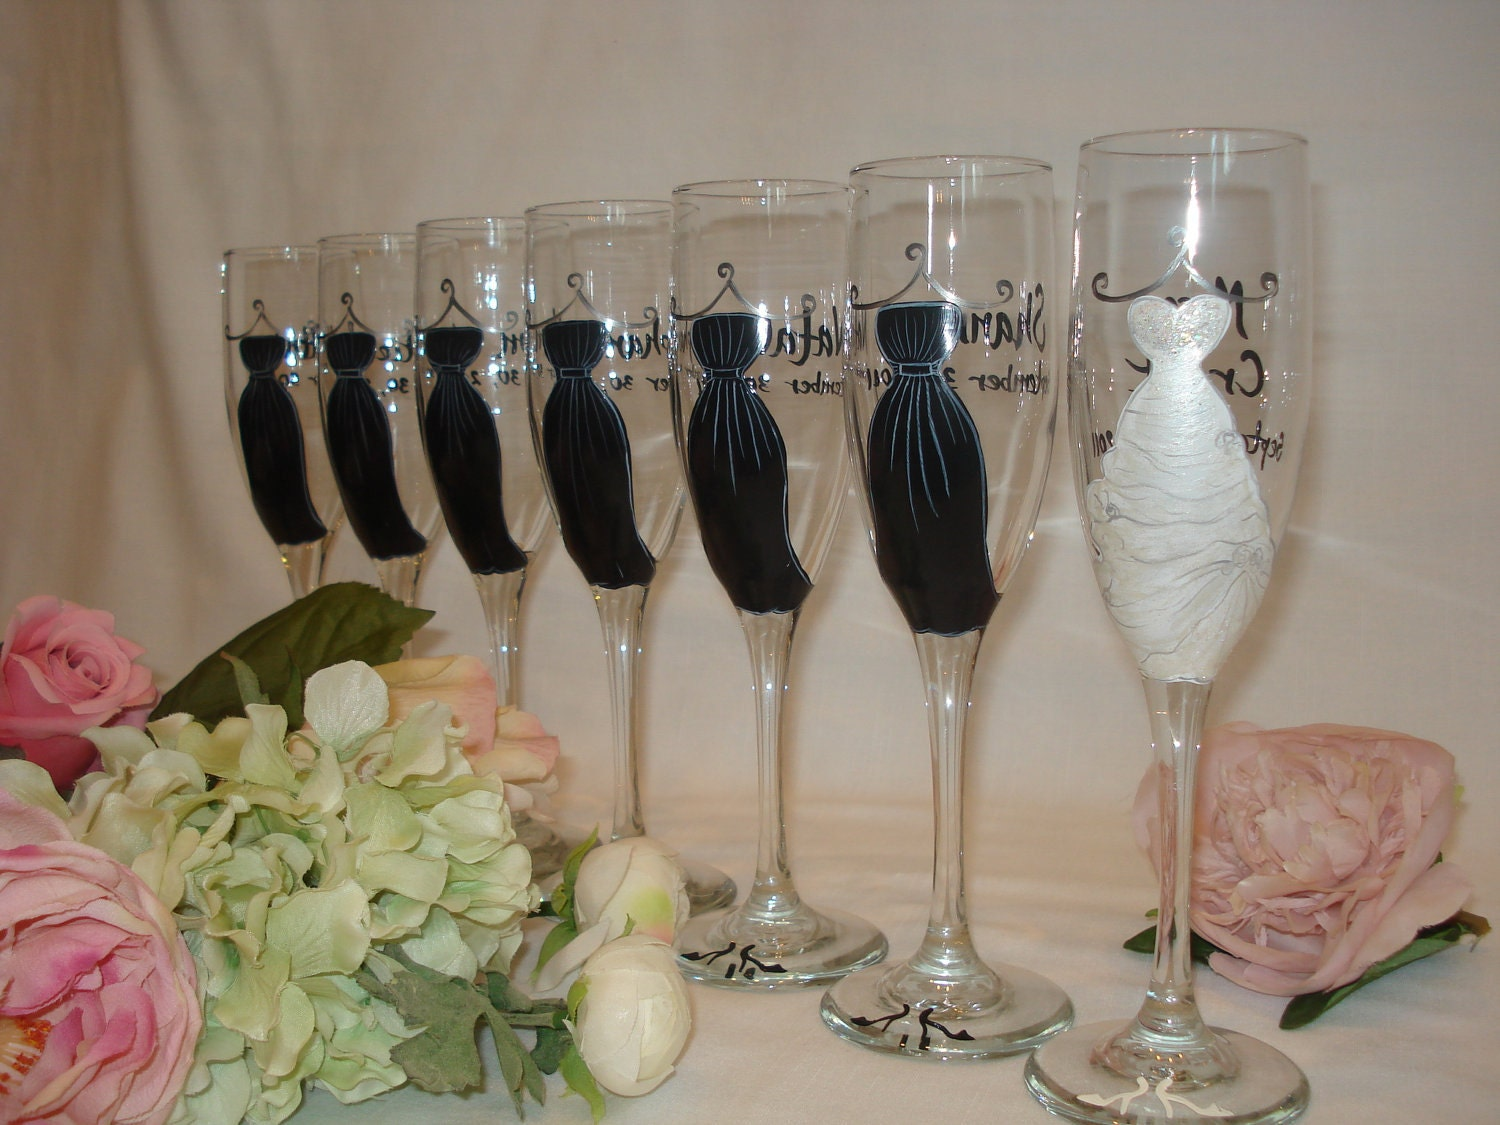 Wedding Shower Gift Ideas Pinterest : Personalized Hand Painted Bridesmaid Dress Wine Glasses GIFT